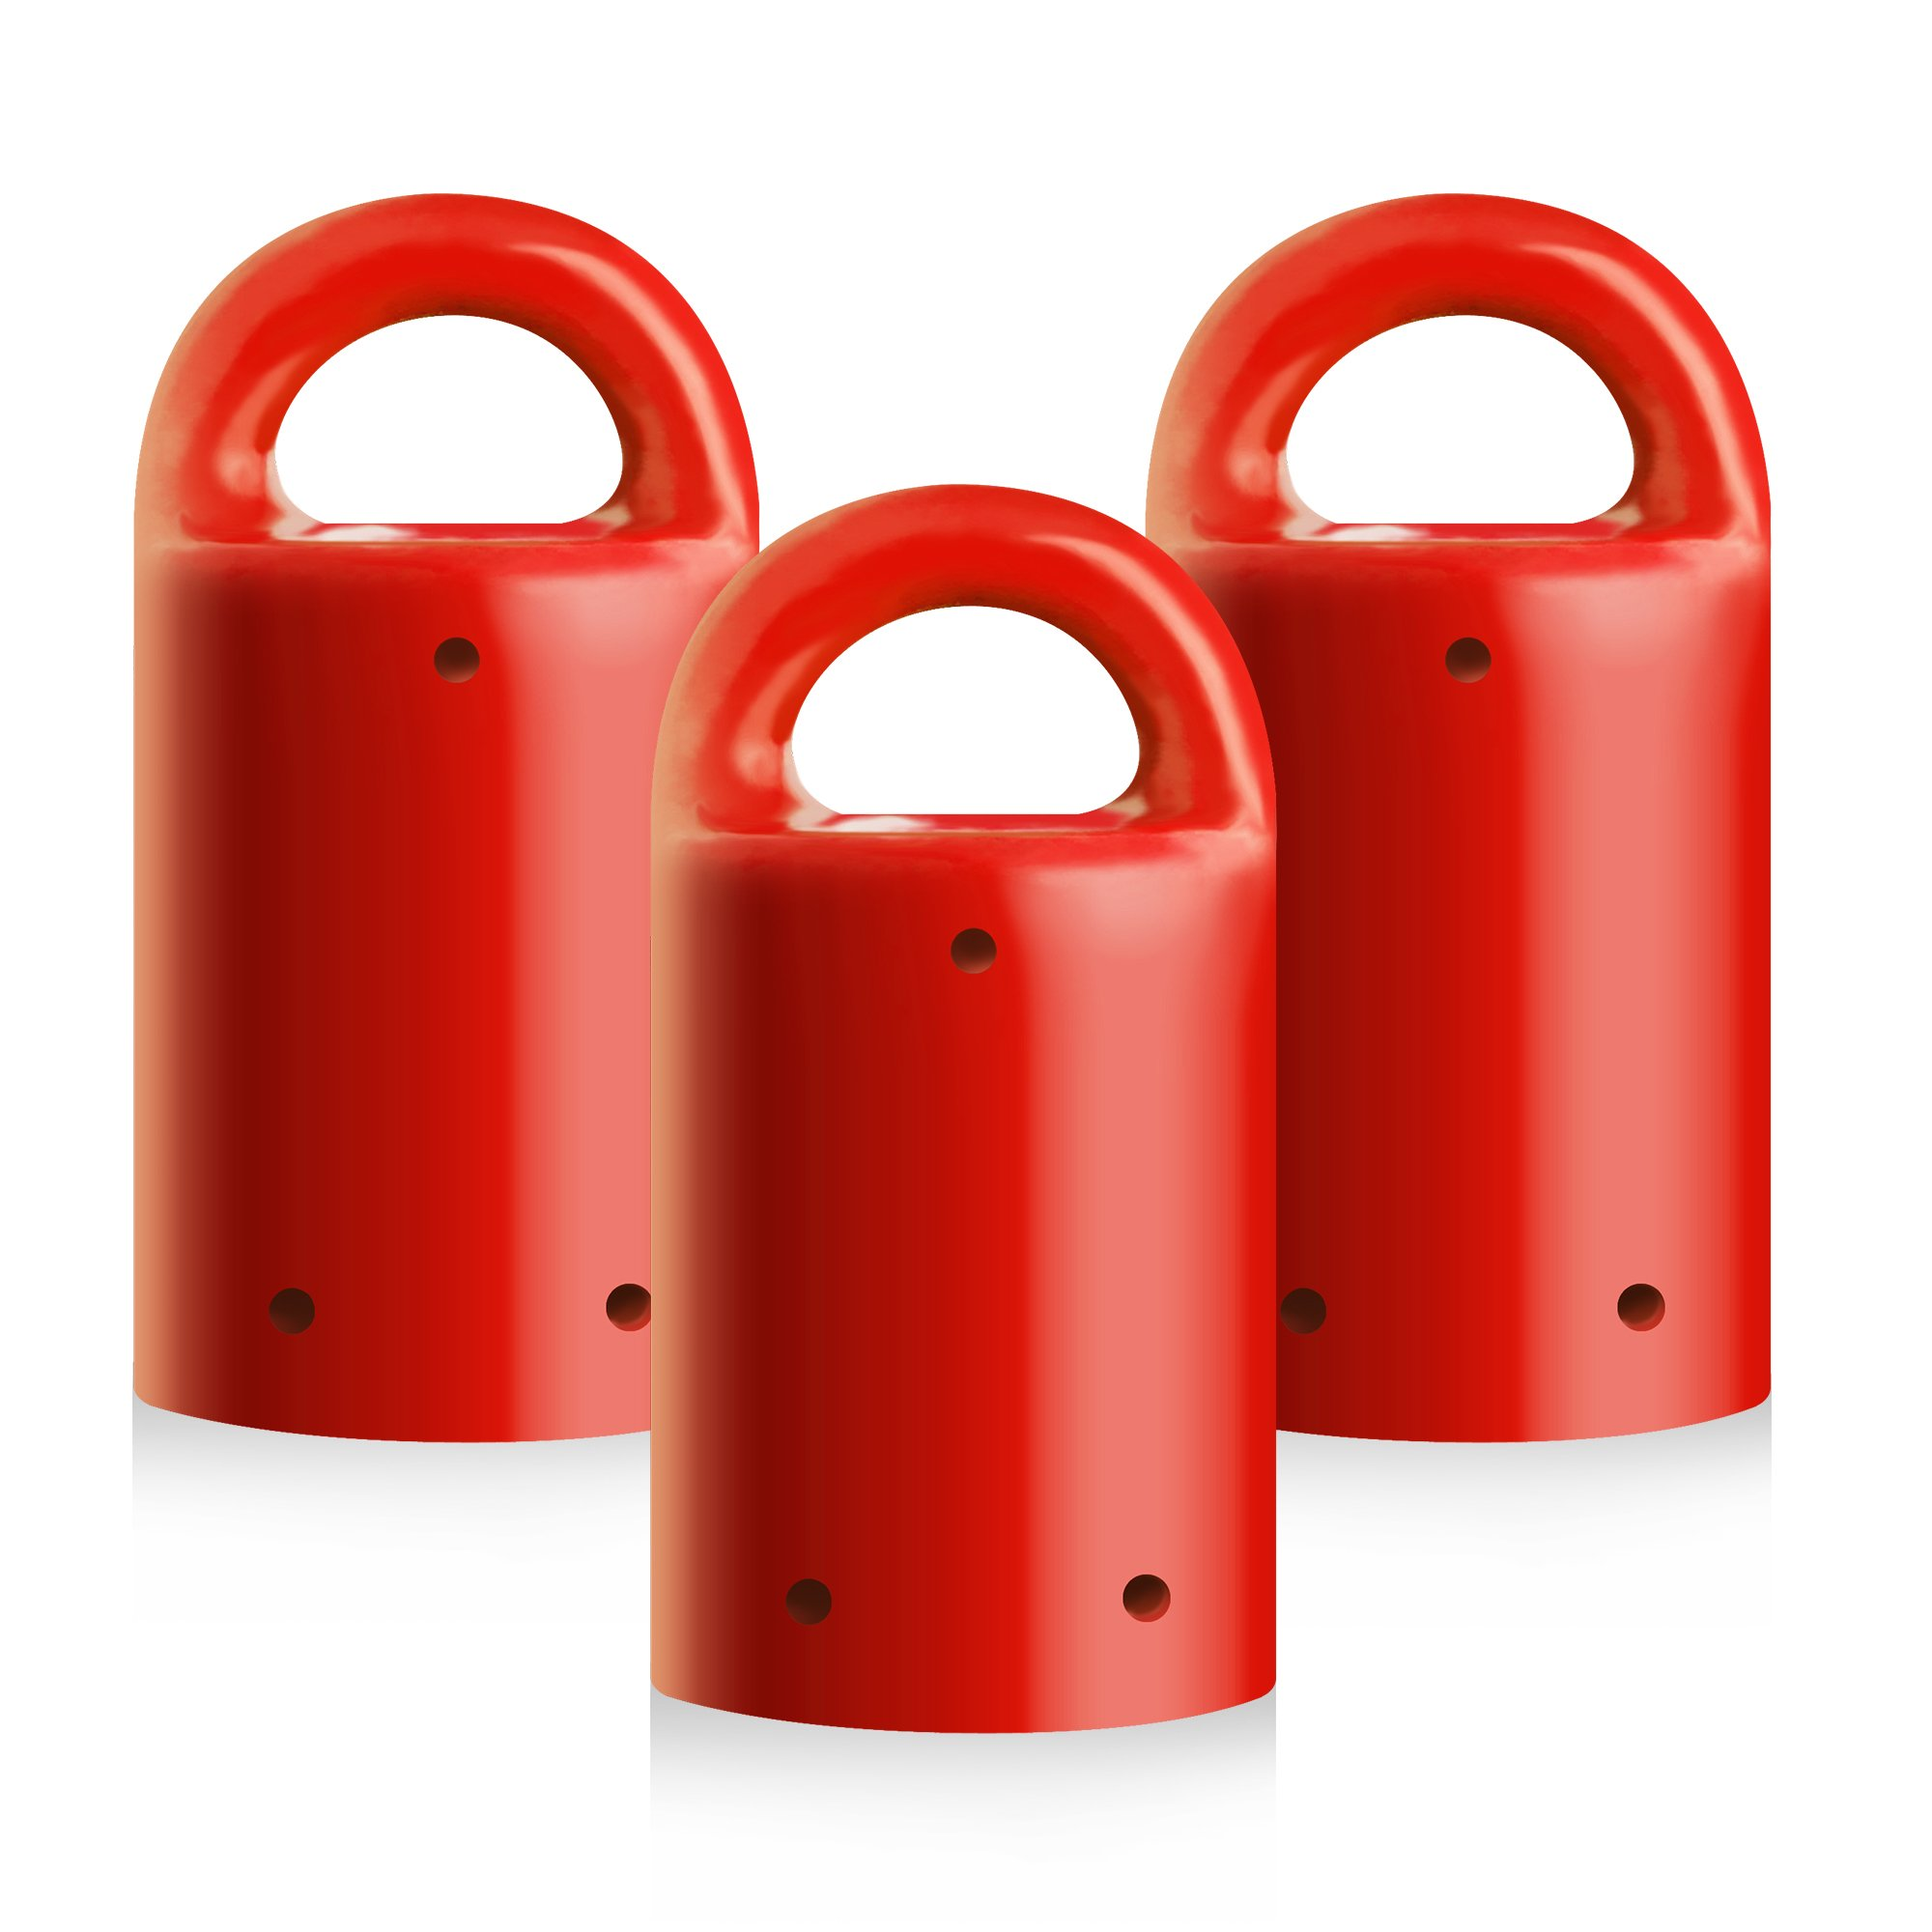 MagnetPal 3 pack Heavy-Duty Neodymium Anti-Rust Magnet, Best for Magnetic Stud Finder / Key Organizer / Indoor and Outdoor Multi Uses, Red with Key Ring (SP-MPM3RD)